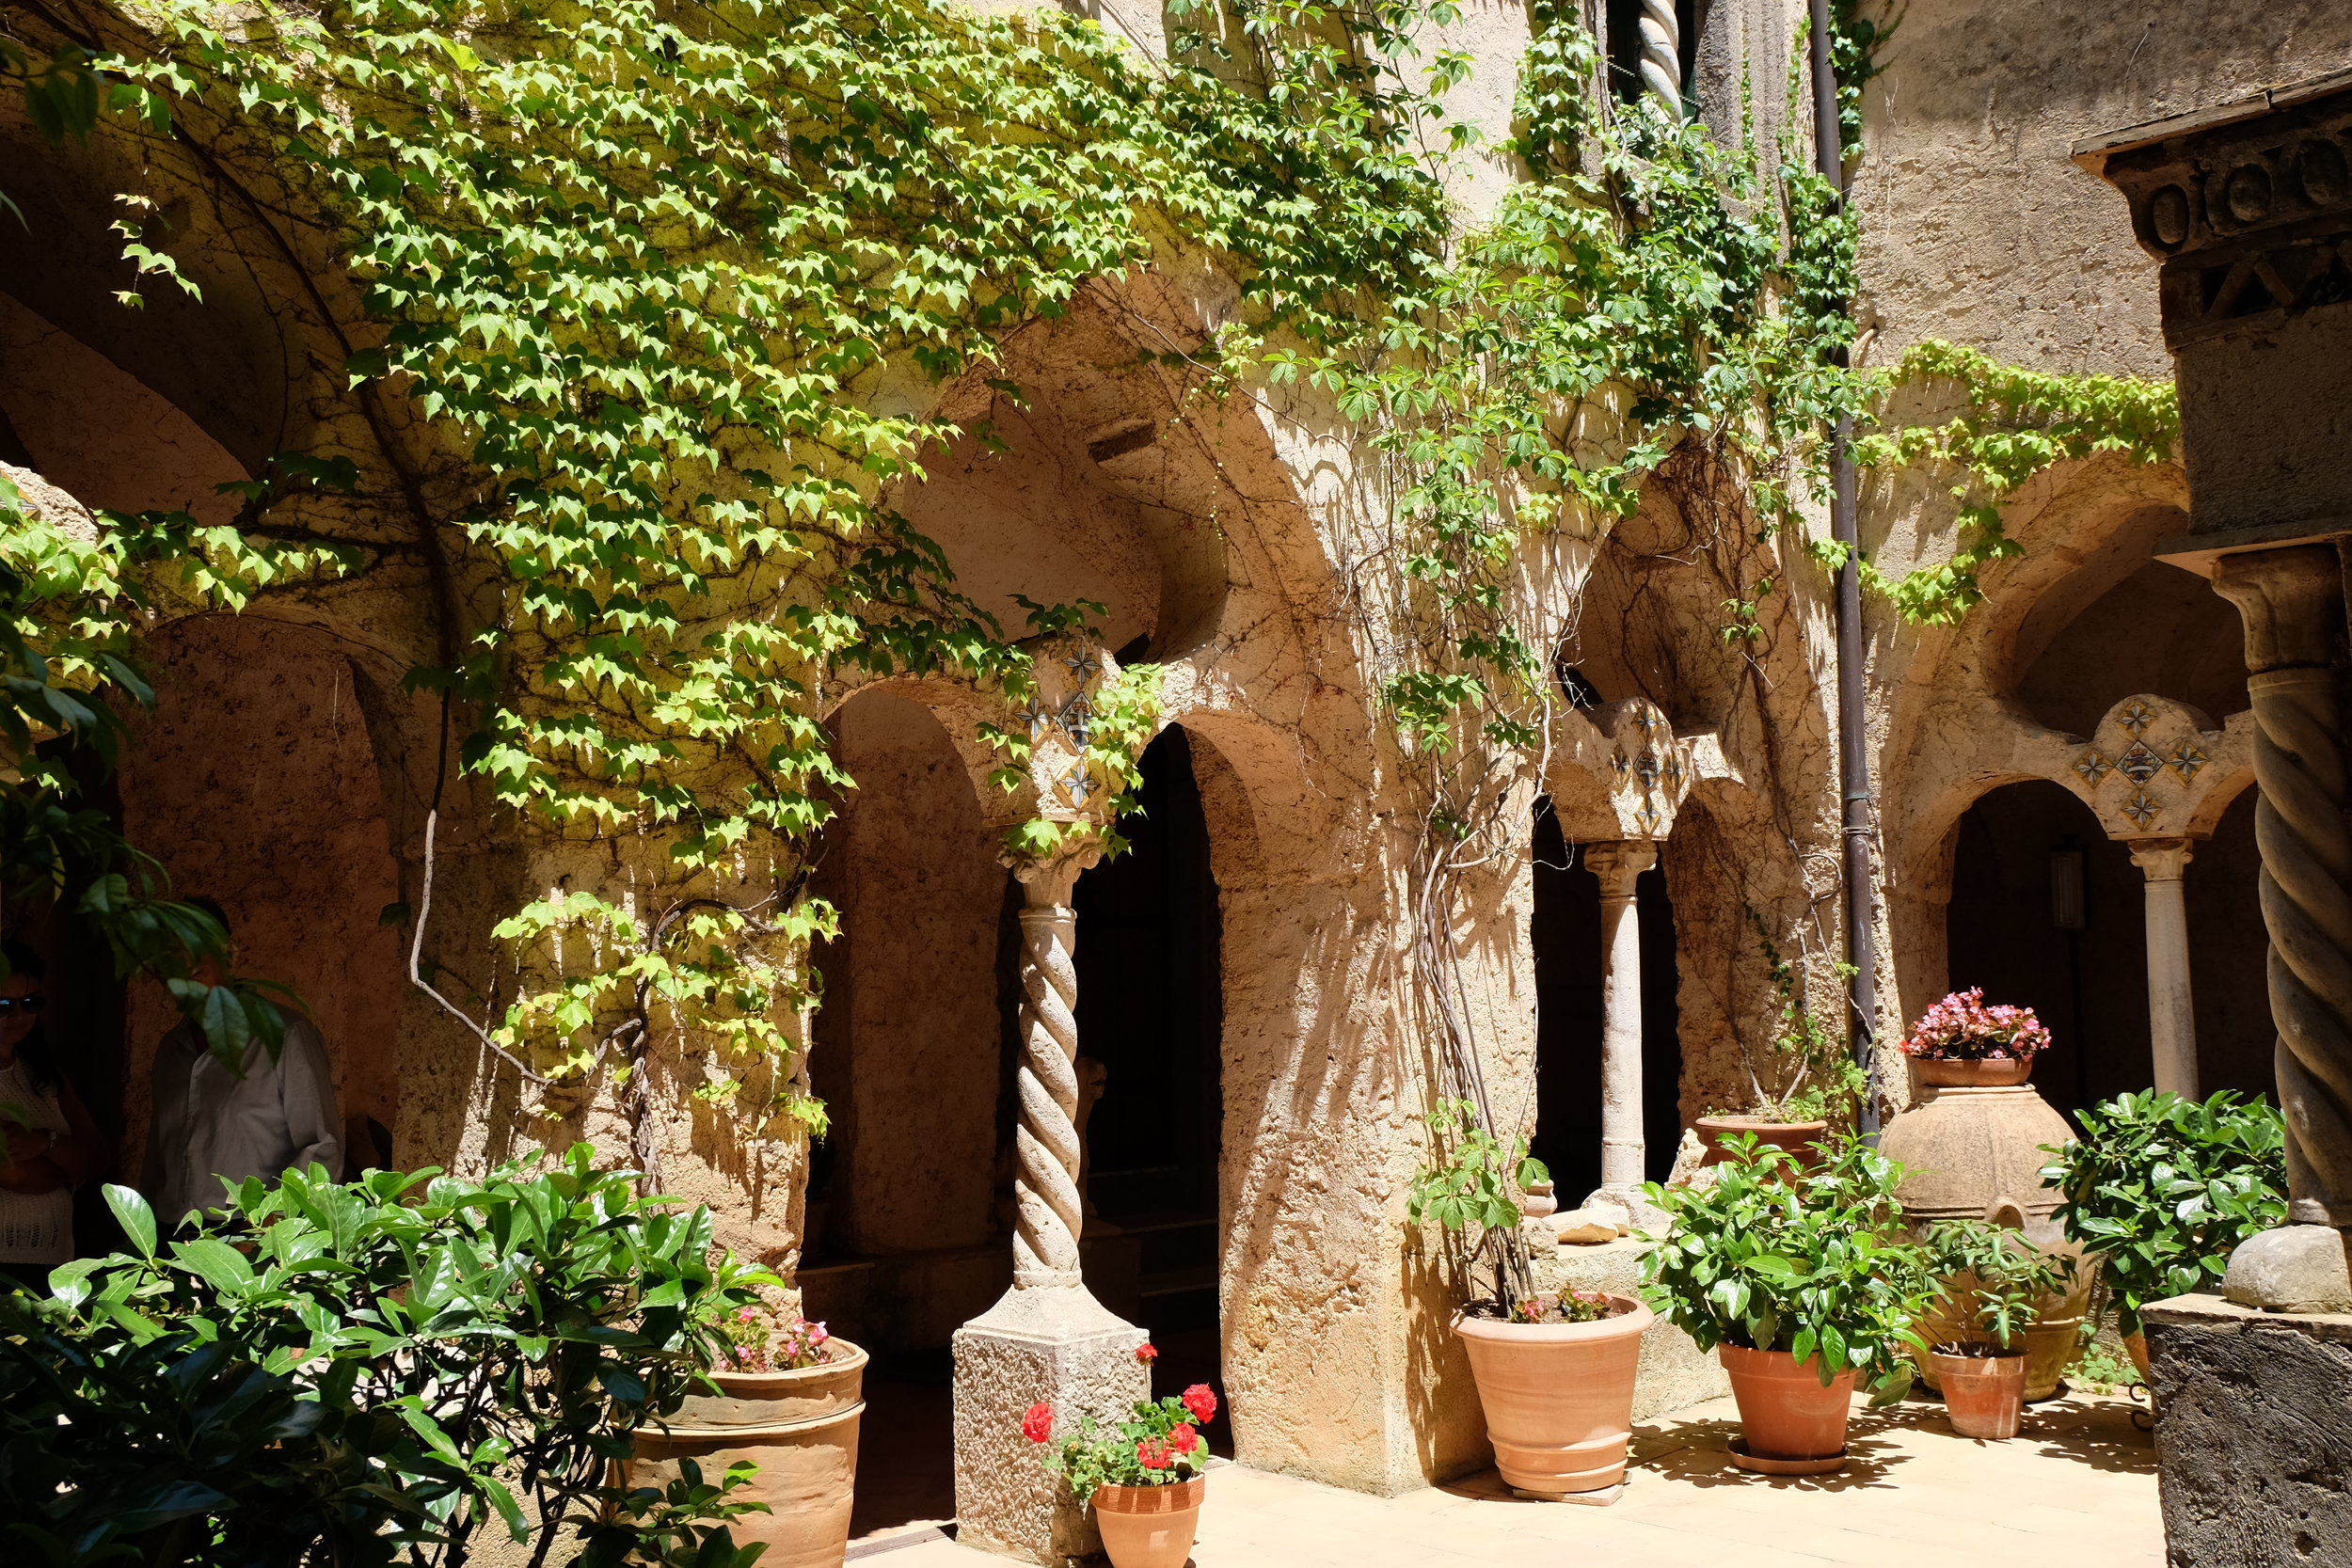 The cloister in the villa.